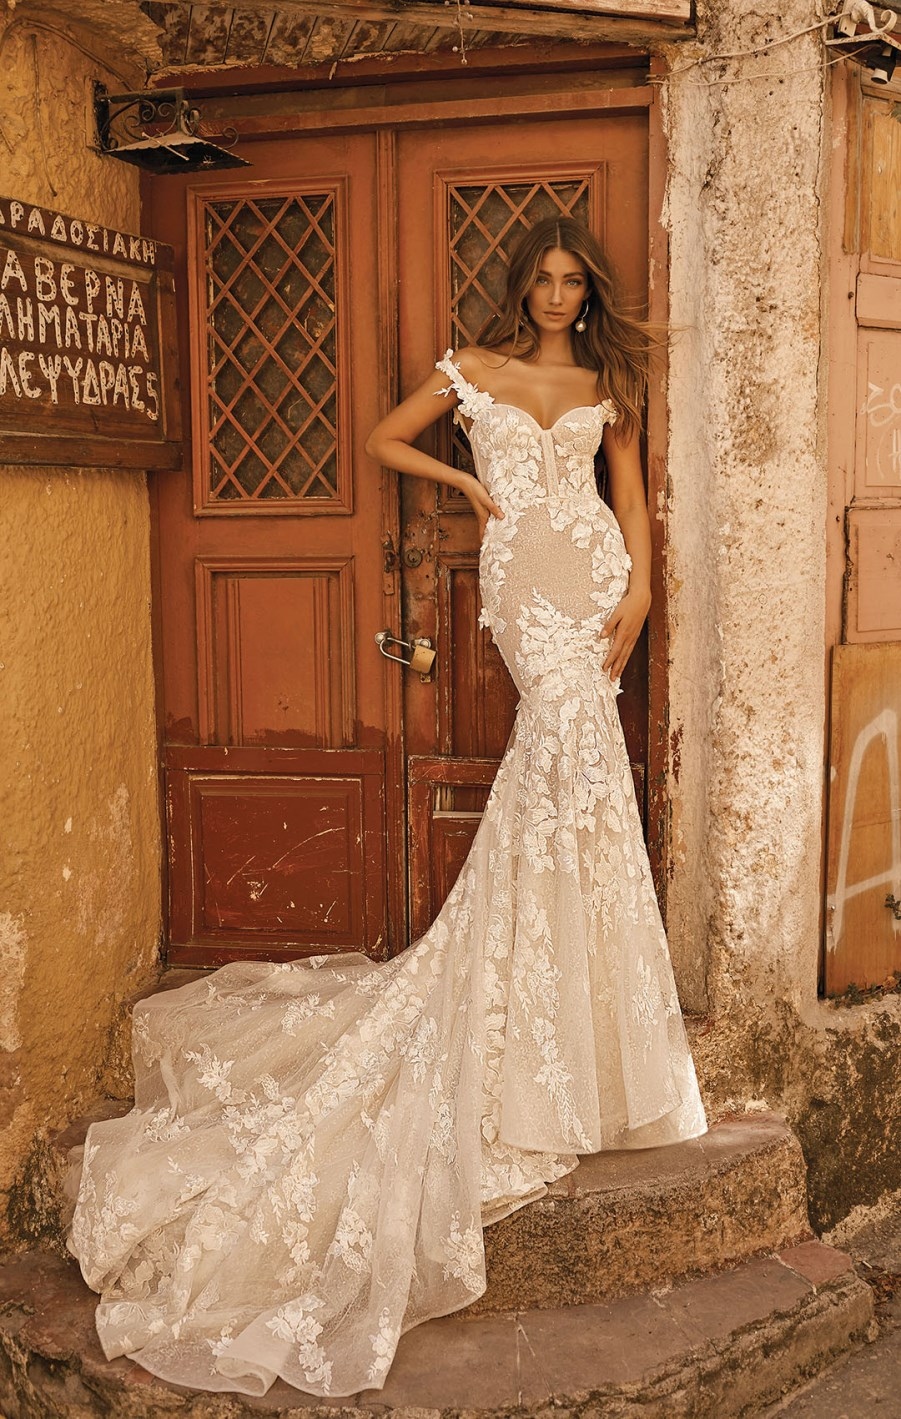 berta-wedding-dress-2019-1 (2)_4